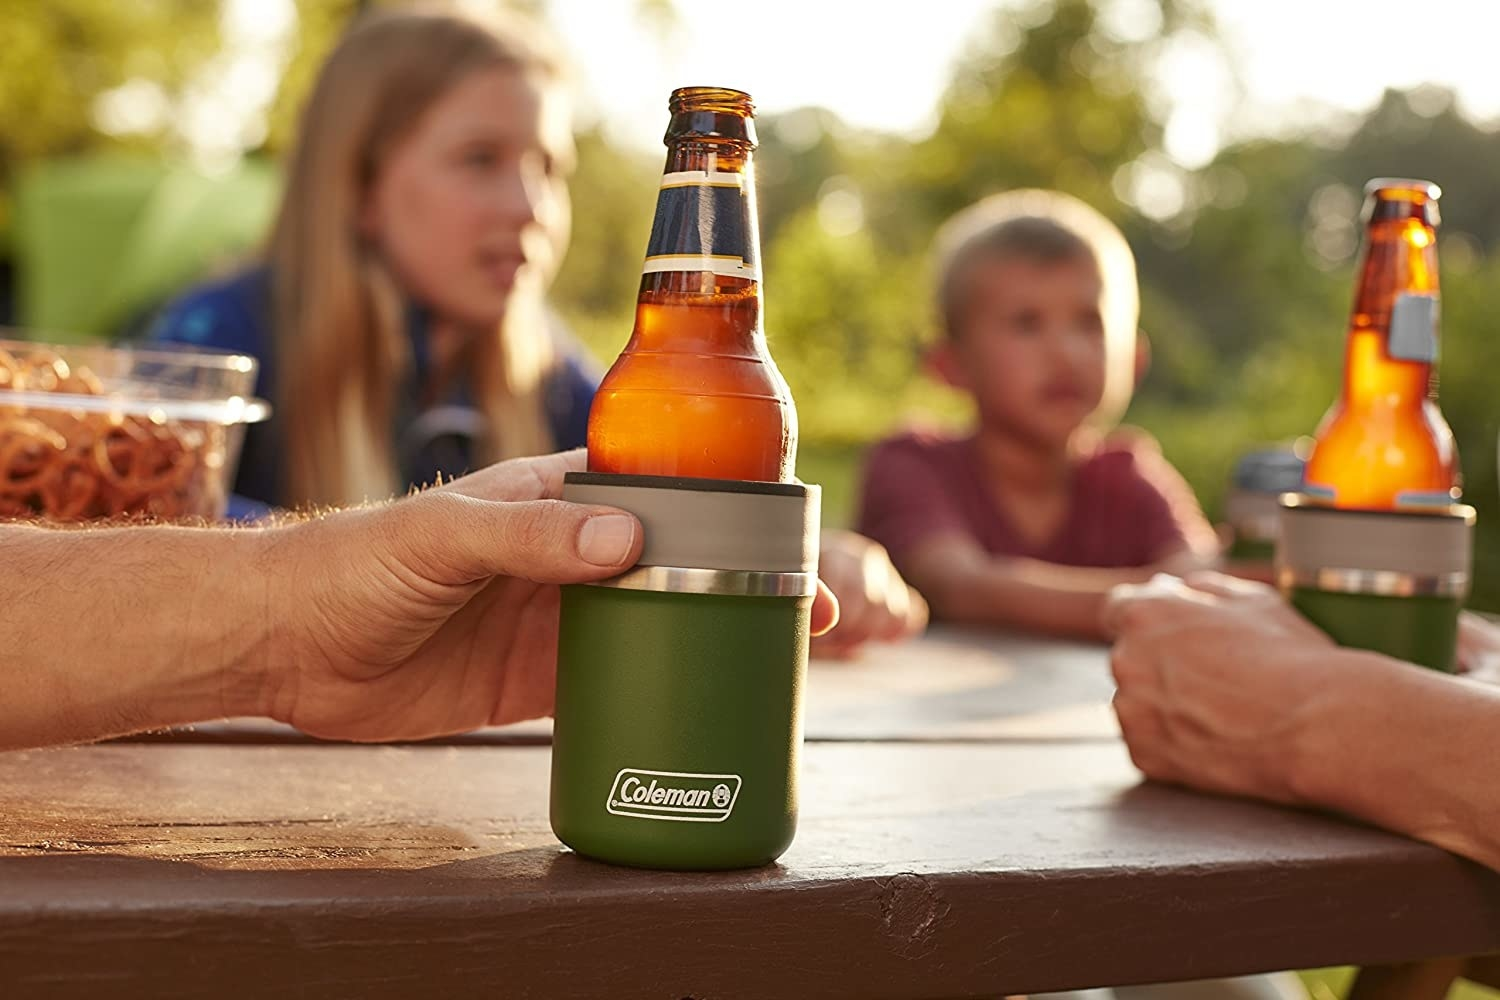 People sit at a picnic table with a bottle in a coozie